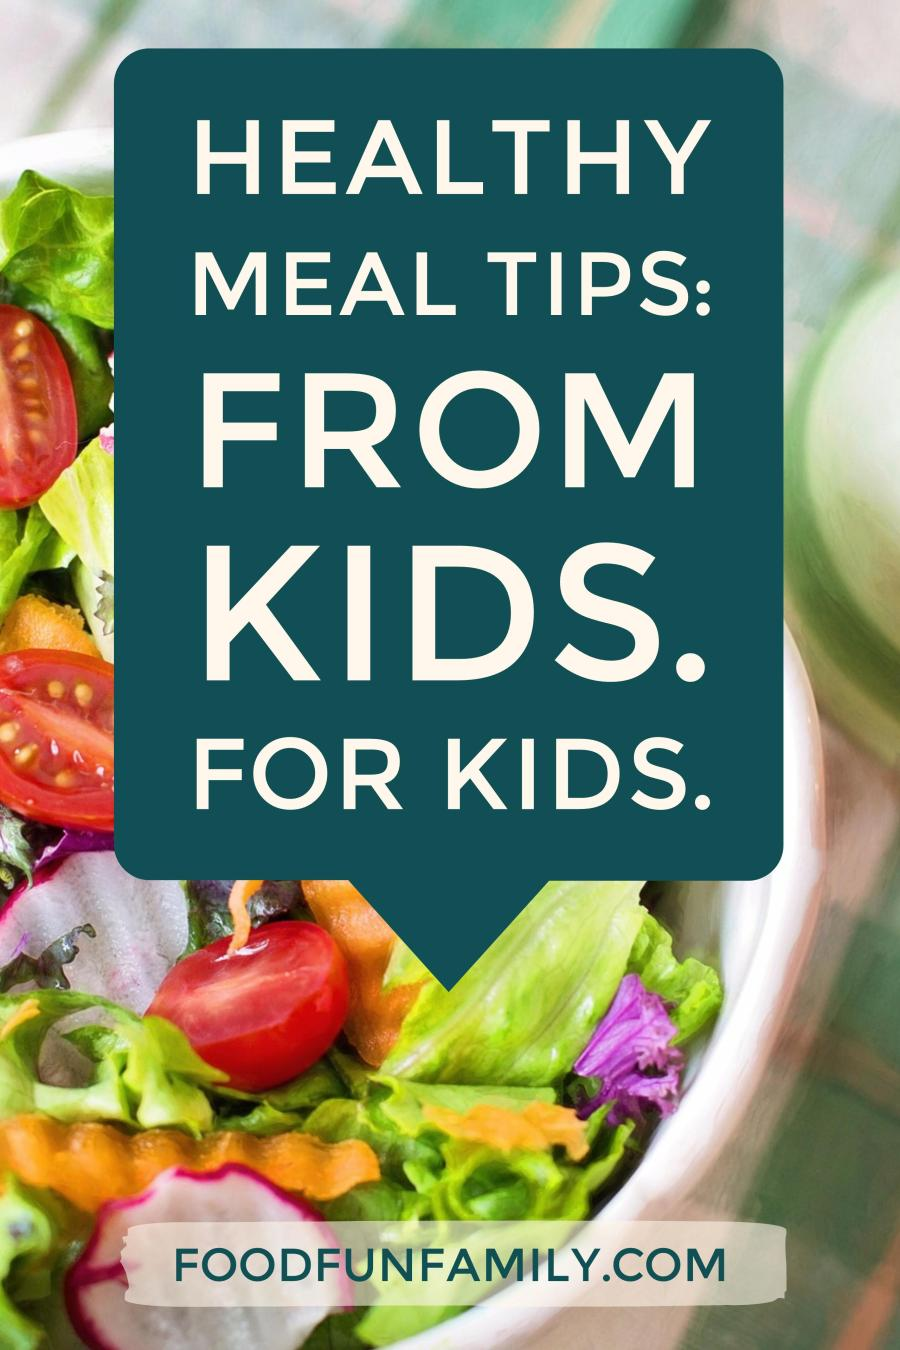 Healthy meal tips...from kids, for kids. Lots of tips from the kids about how to make better choices when eating meals and snacking.